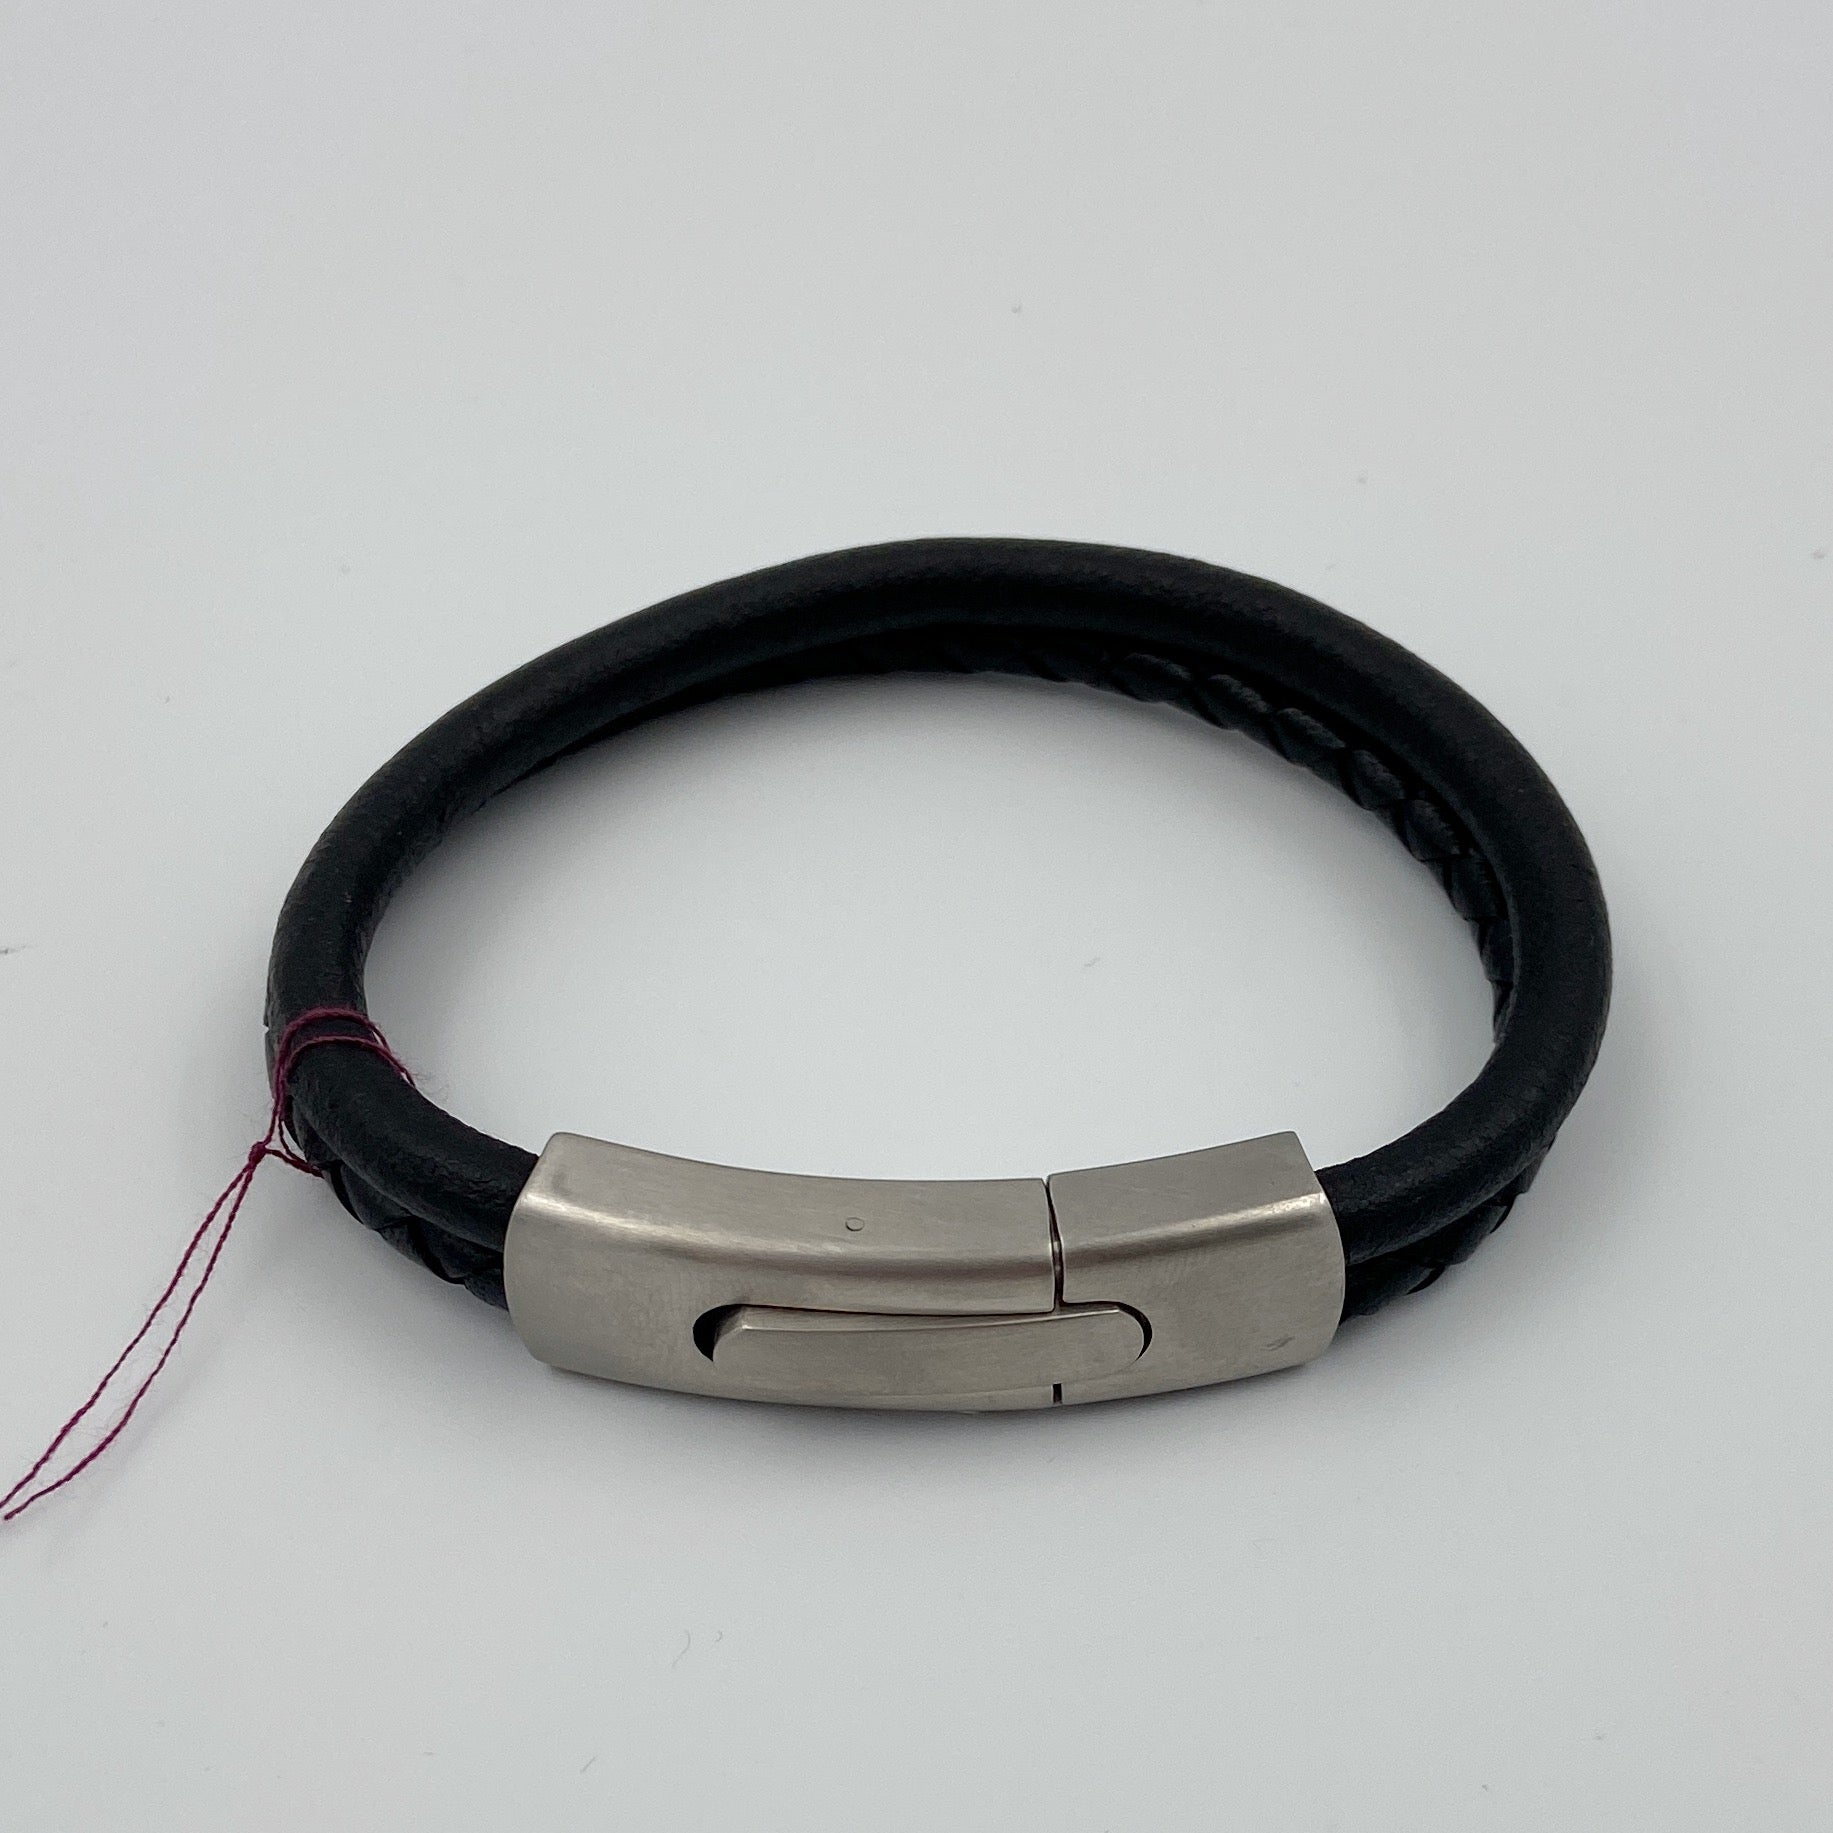 Multi Loop Leather Bracelet with Stainless Steel Clasp